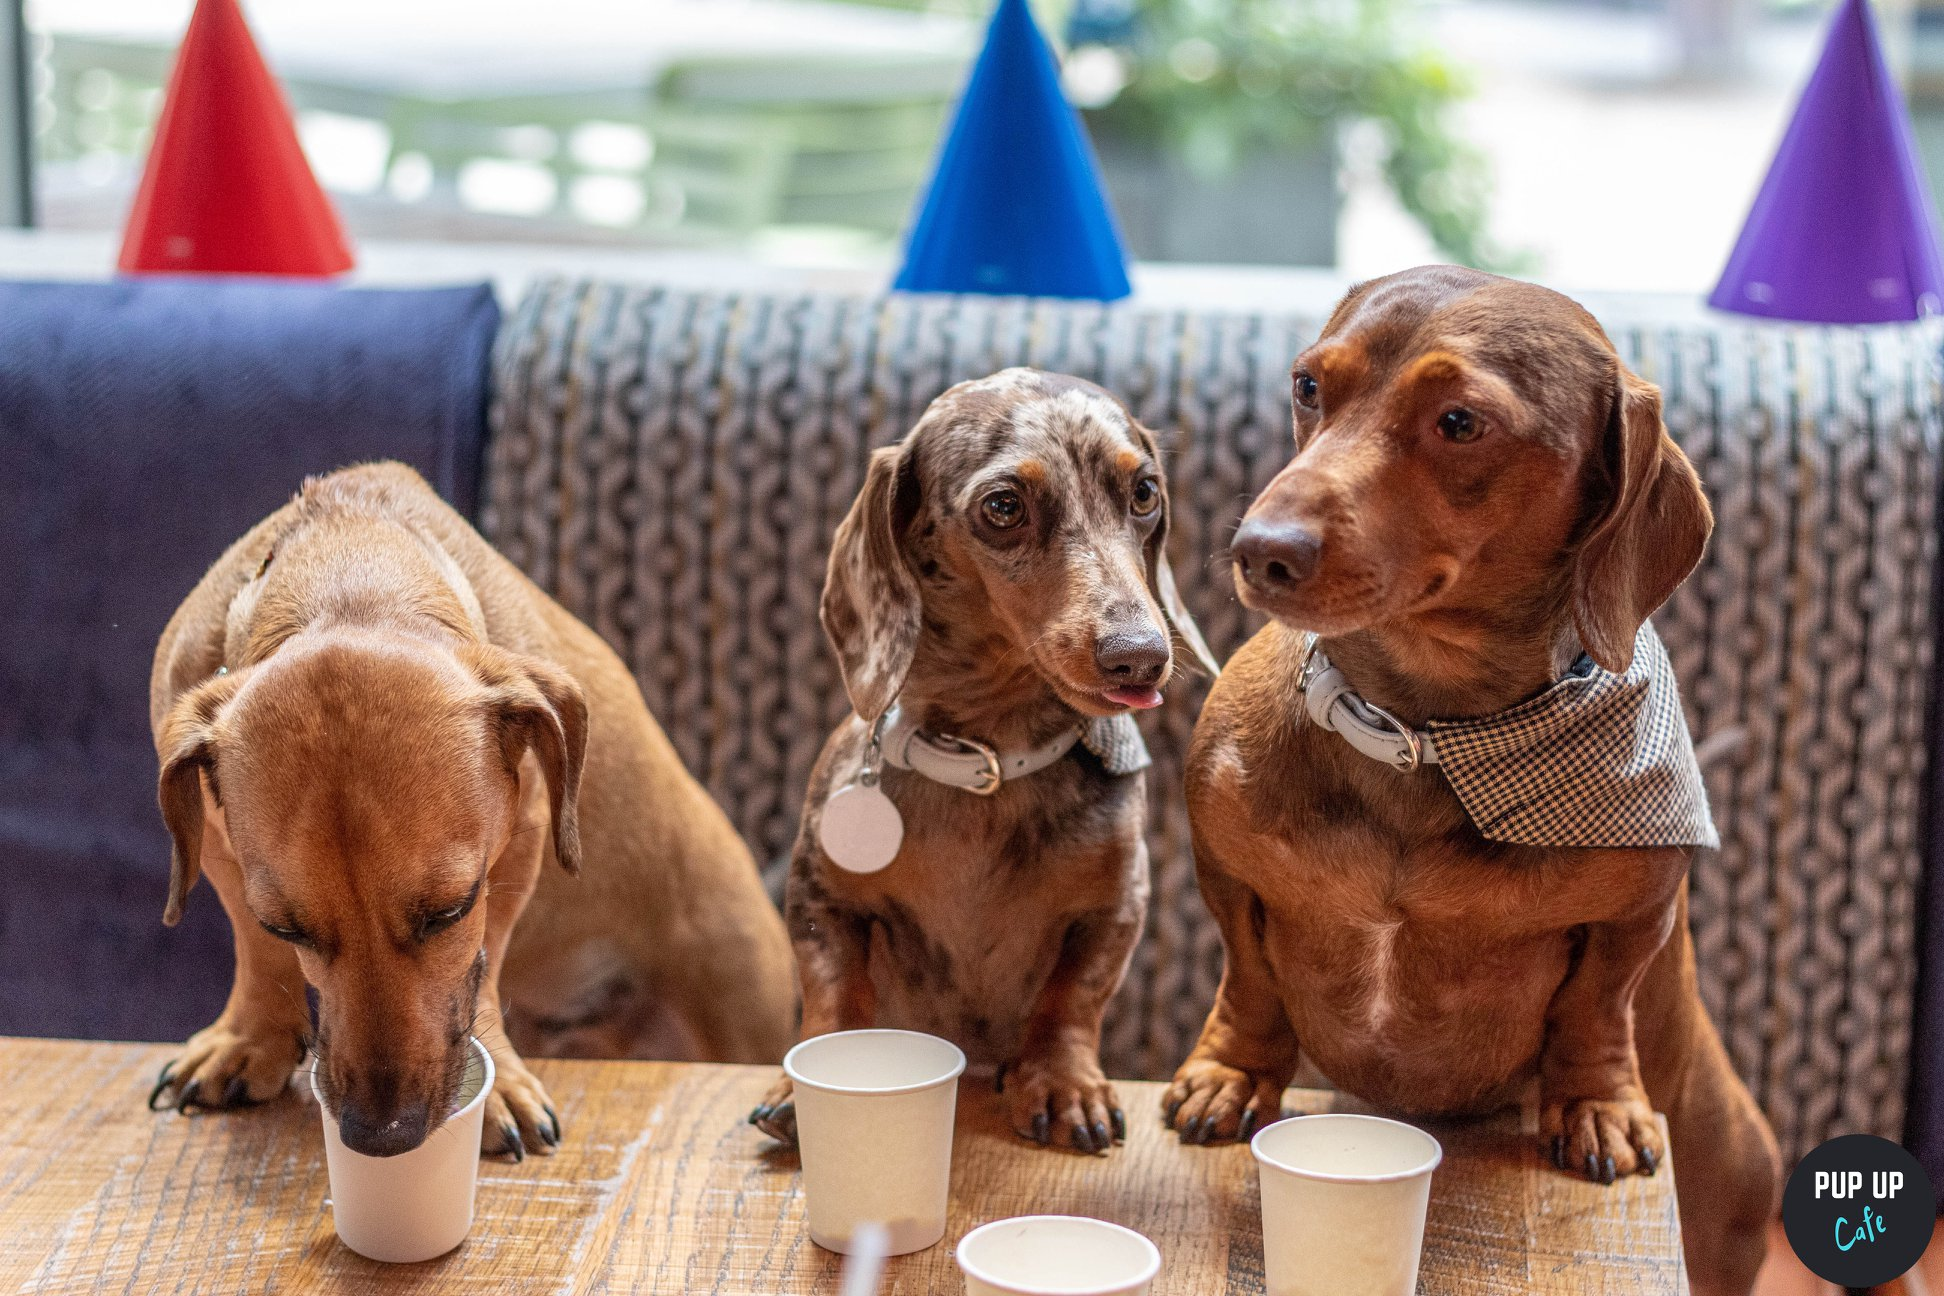 Dachshund Pop Up Cafe - We're coining this niche but necessary, finally Dachshund's get to have their moment in the sun (figuratively speaking, of course.)This August the first Pup Up Cafe comes to Revolution Parsonage Gardens to host their very own Dachshund Edition. The day offers the chance to mingle with fellow dog owners and includes beverages and snacks, we're talking pupcakes people, plus trade stands, games and photo booths.Details:Date: Sunday, 18th August, 10am - 4pmLocation: Revolution Parsonage Gardens, Arkwright House, M3 2HP Manchester, United KingdomPrice: Dogs go free, dog owners £8